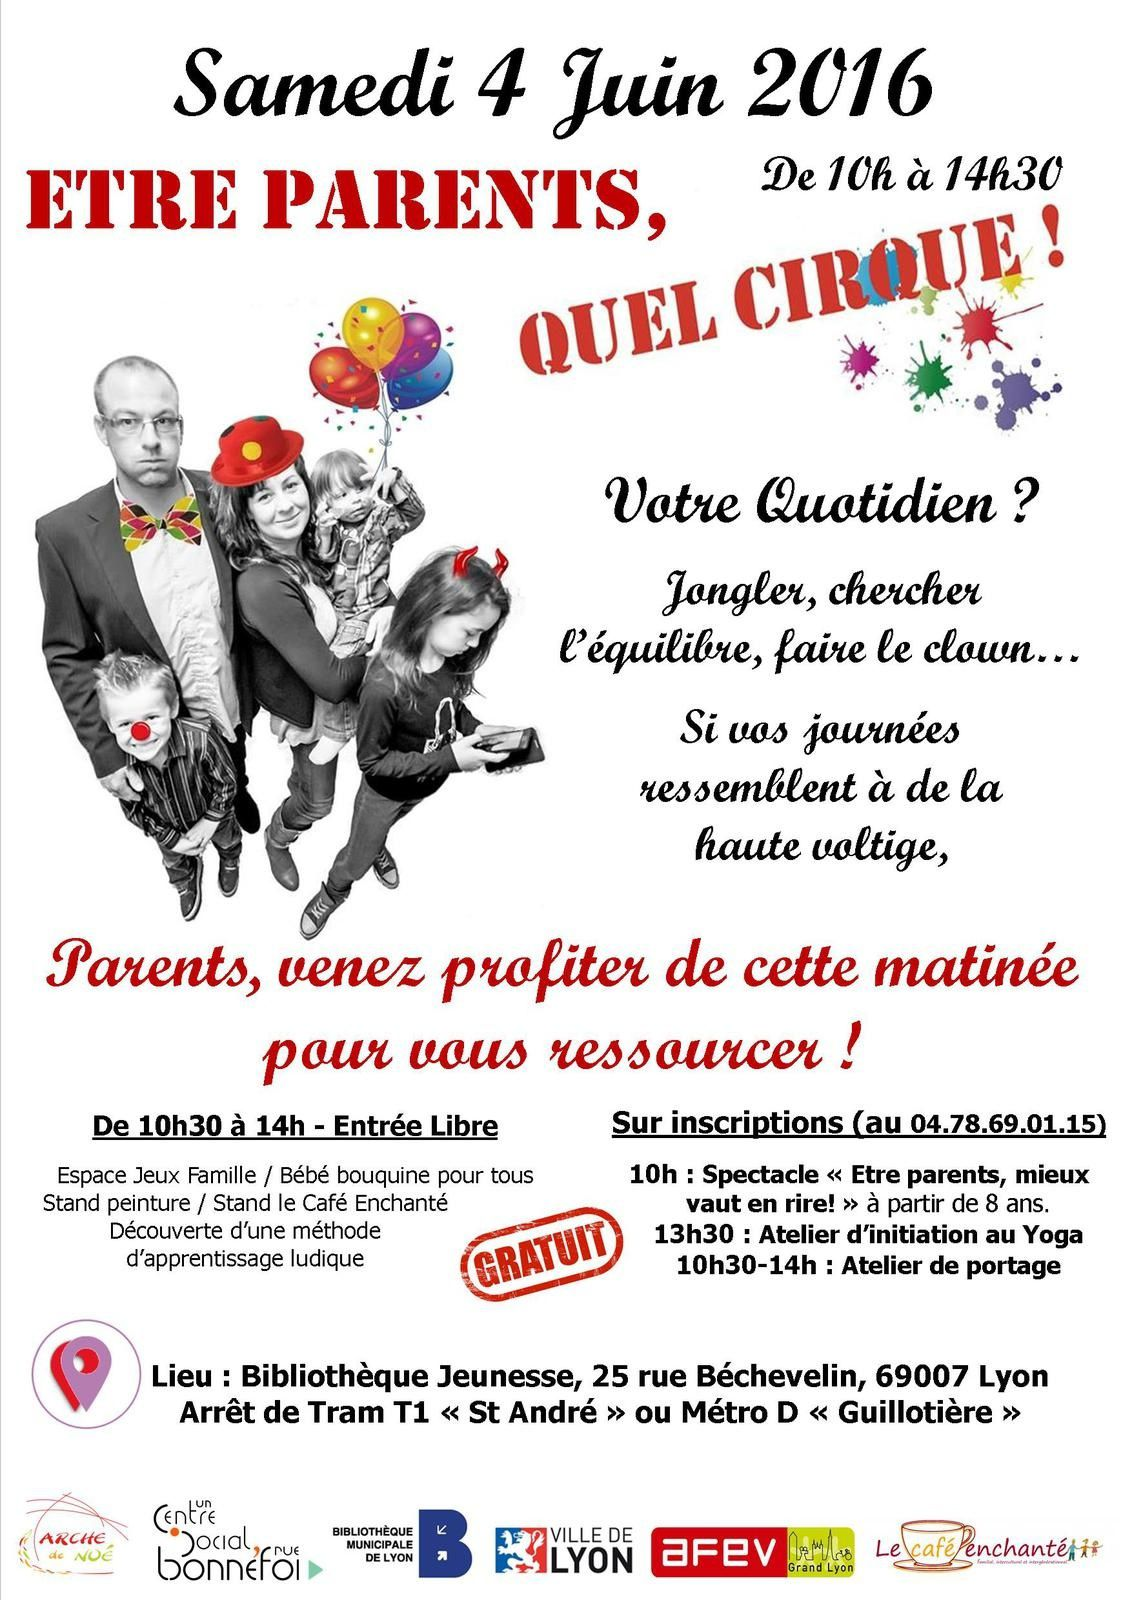 ETRE PARENTS, QUEL CIRQUE !!